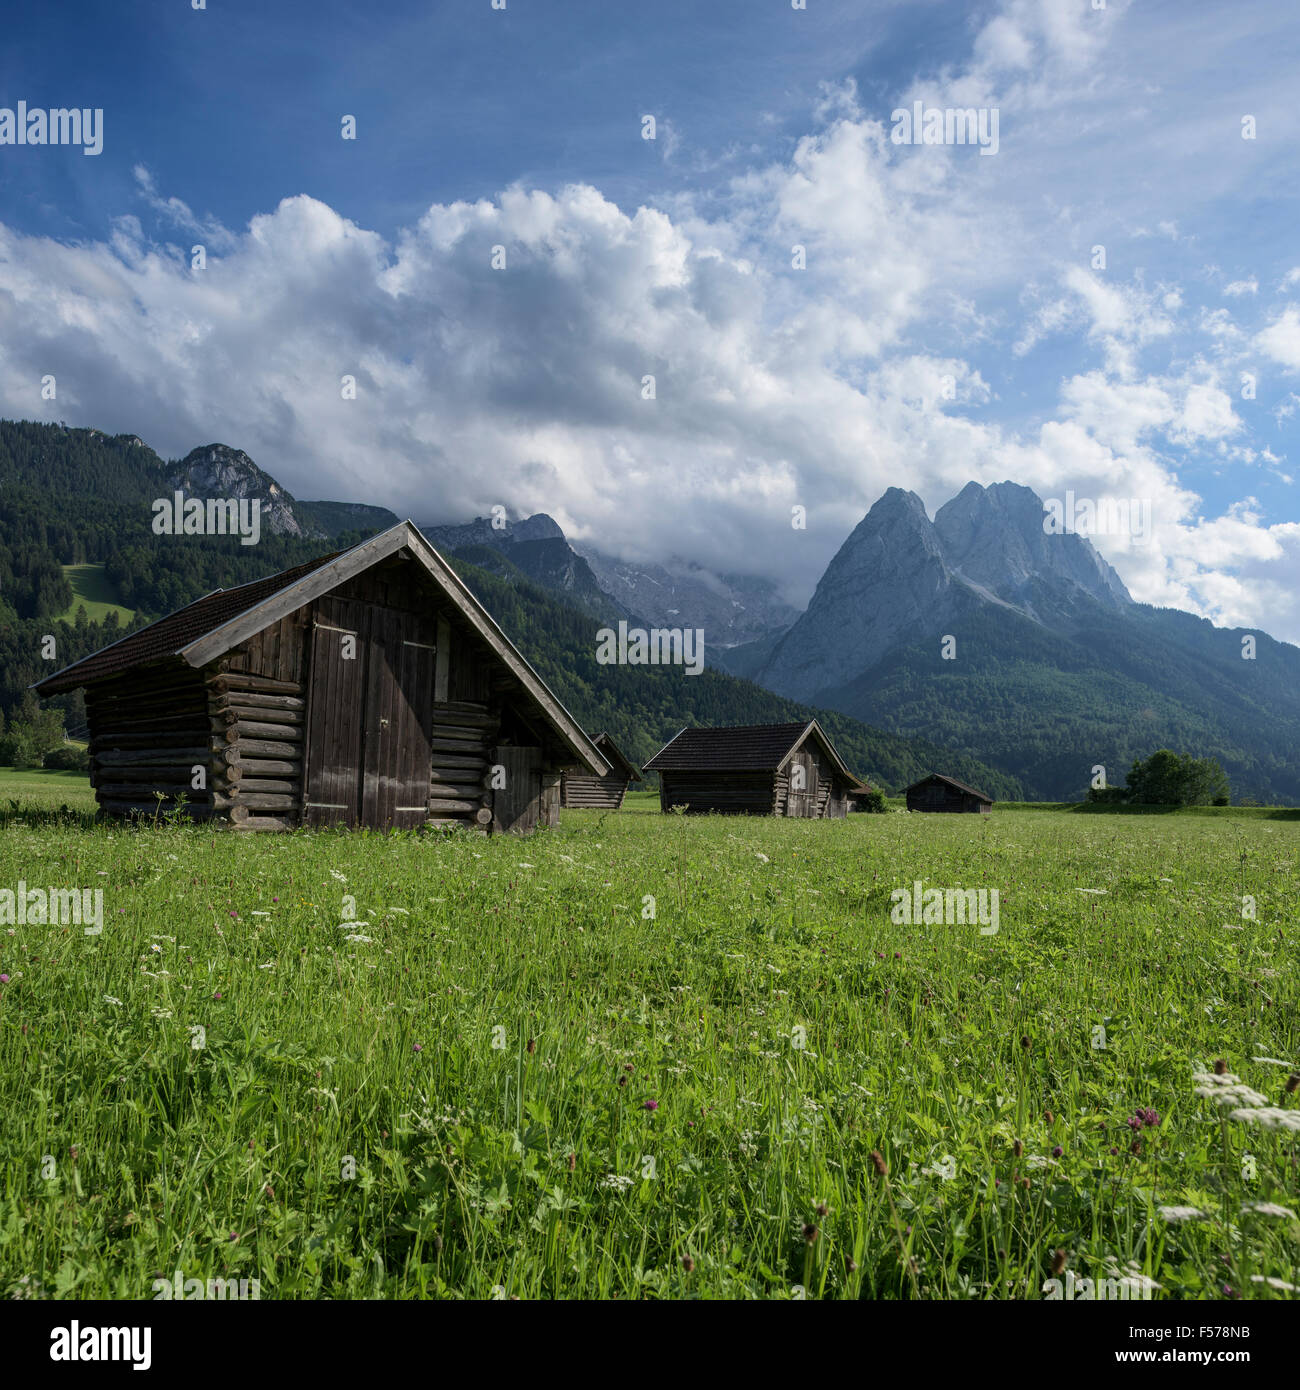 Wooden hay barns in field with mountains in background, Garmisch-Partenkirchen, Bavaria, Germany - Stock Image